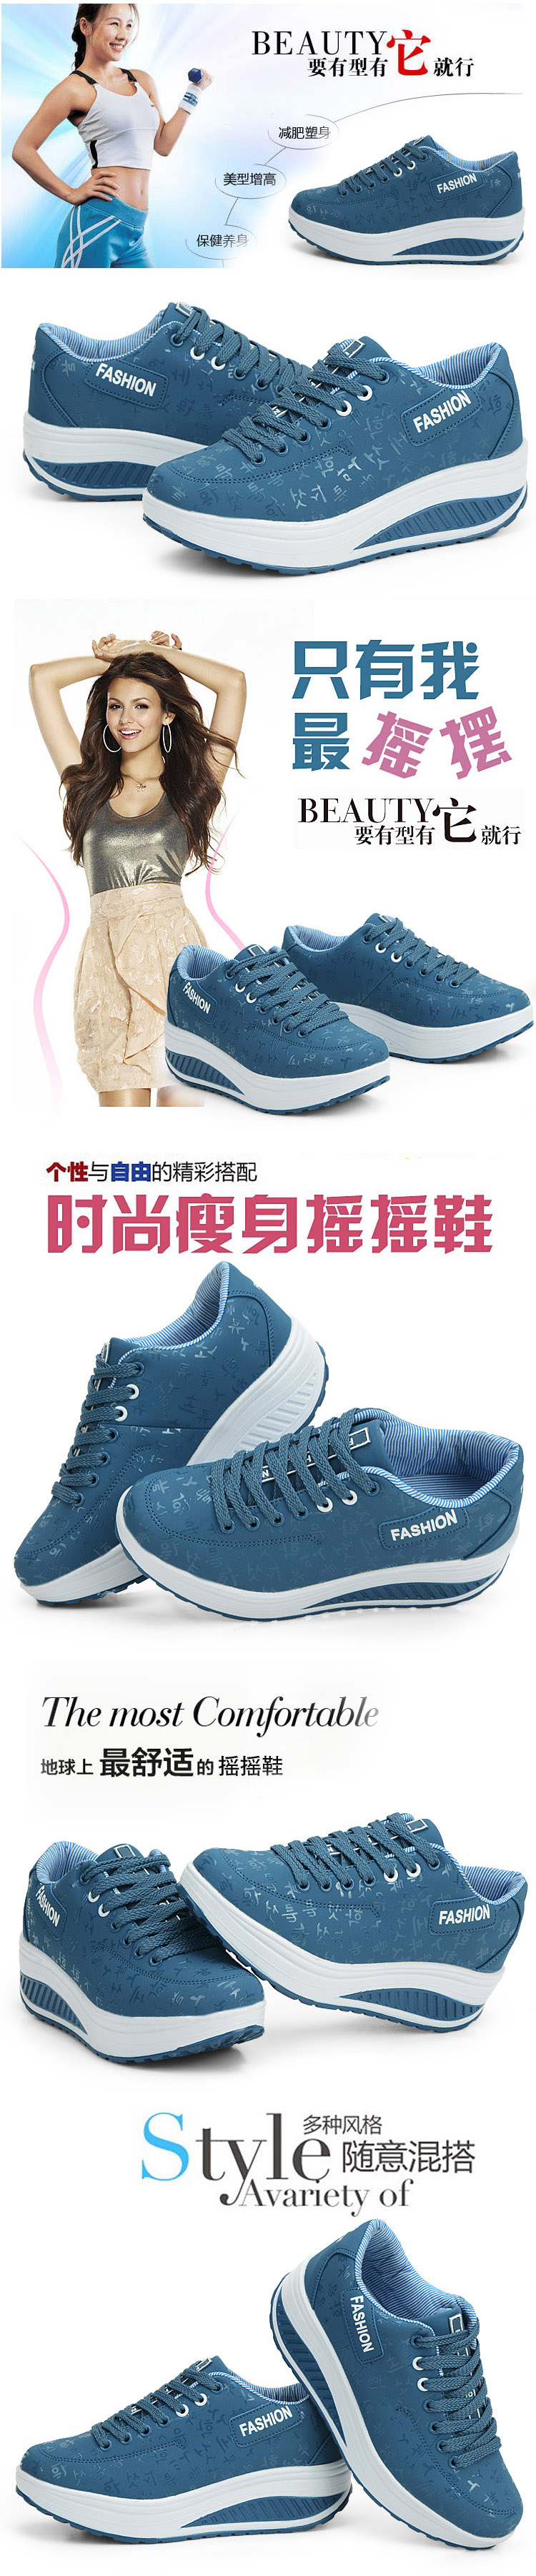 2016 Casual Shoes For Women Reduce Weight Boots Height Increasing Platform Zapatillas Deportivas Mujer Zapatos Mujer 21 Design